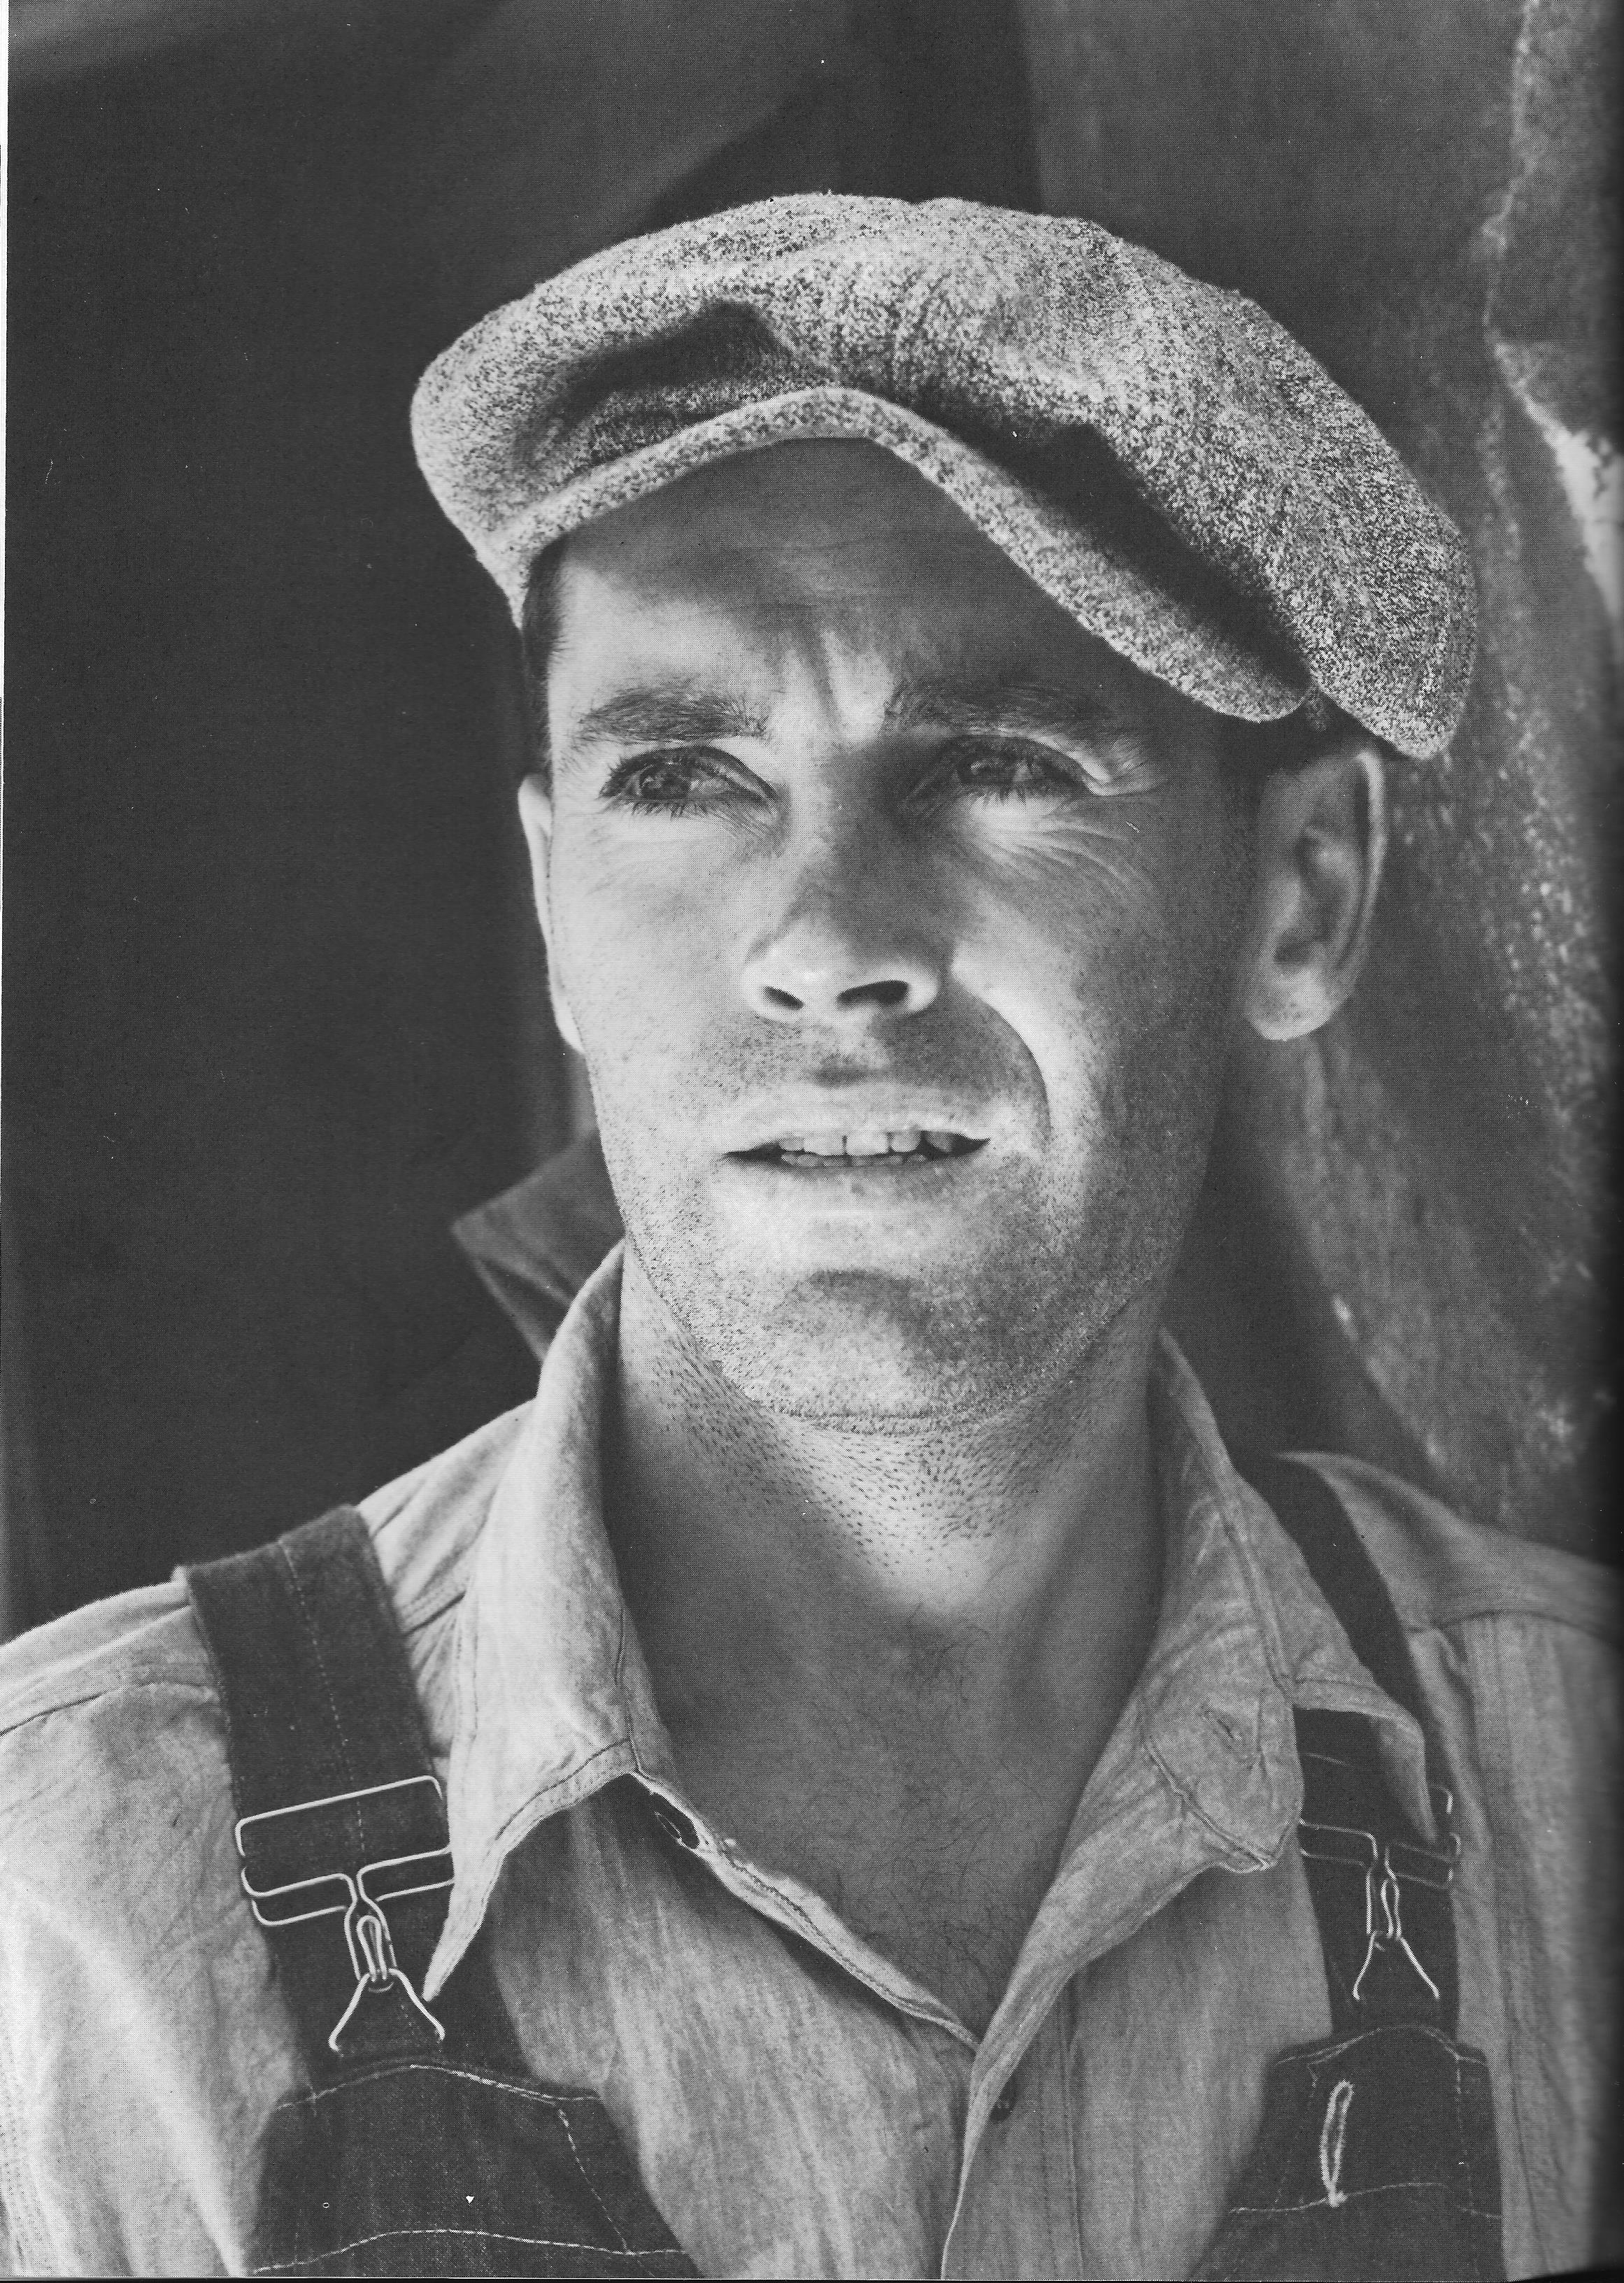 the ghost of tom joad and the grapes of wrath essay Kassin protest music web pages 2013 the ghost of tom joad was written as a rock song to 'grapes of wrath' tom joad gives his ill be there which.